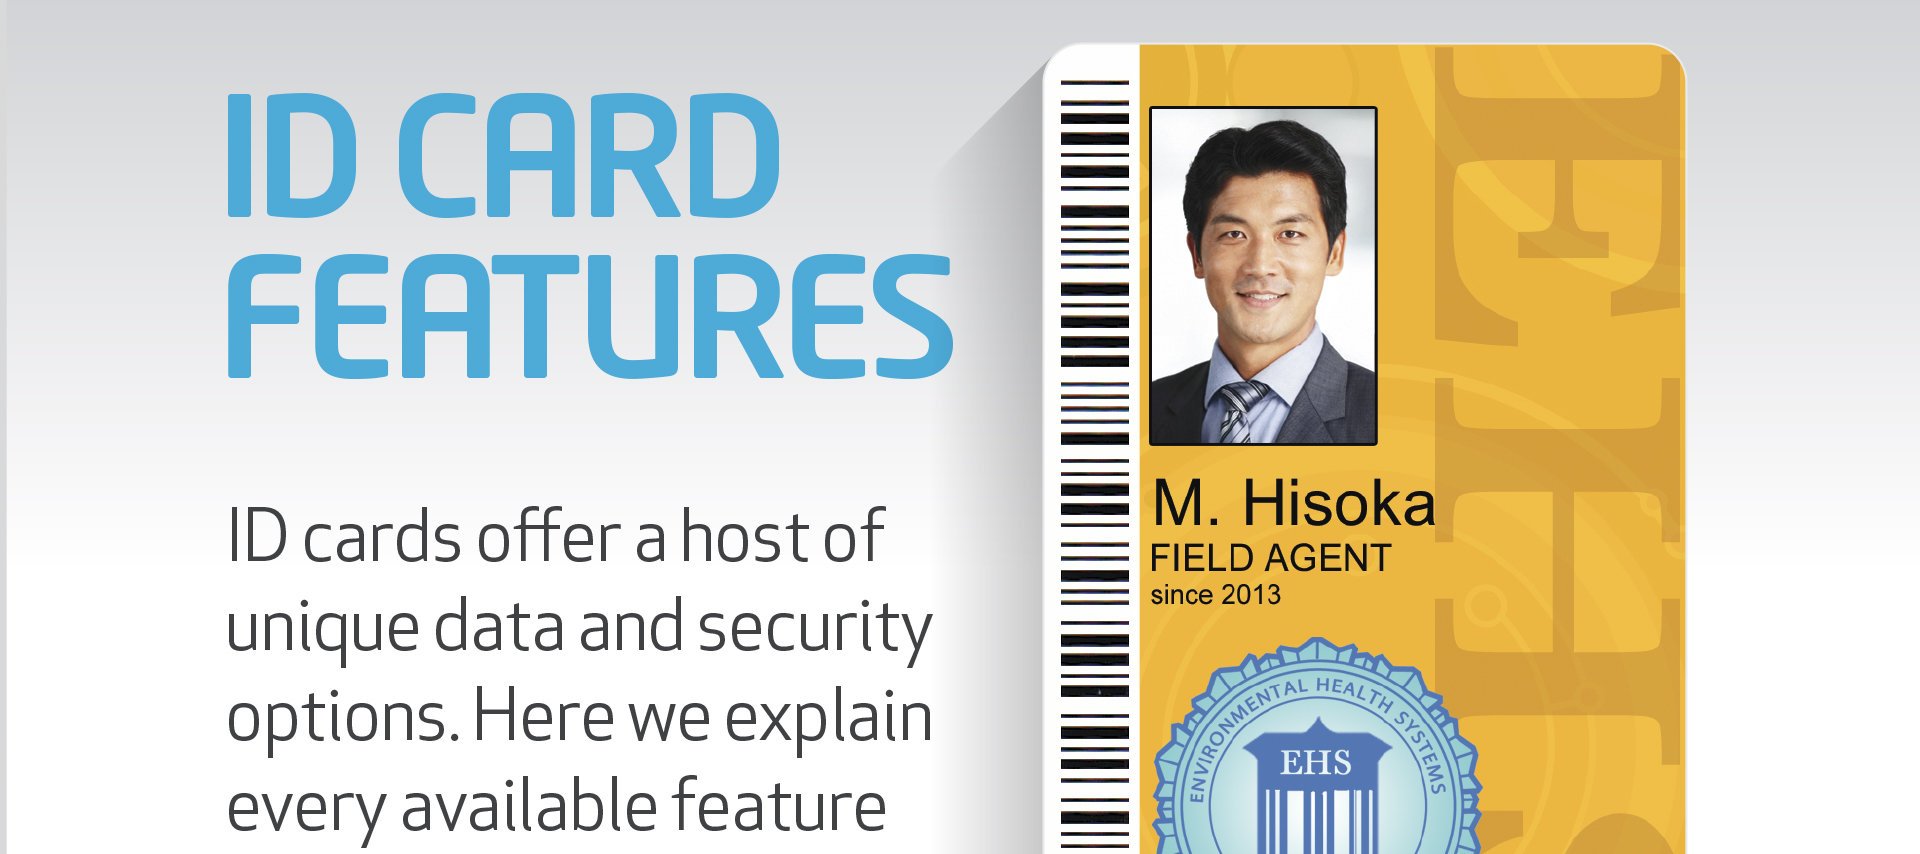 Blog post explaining all the available ID card features